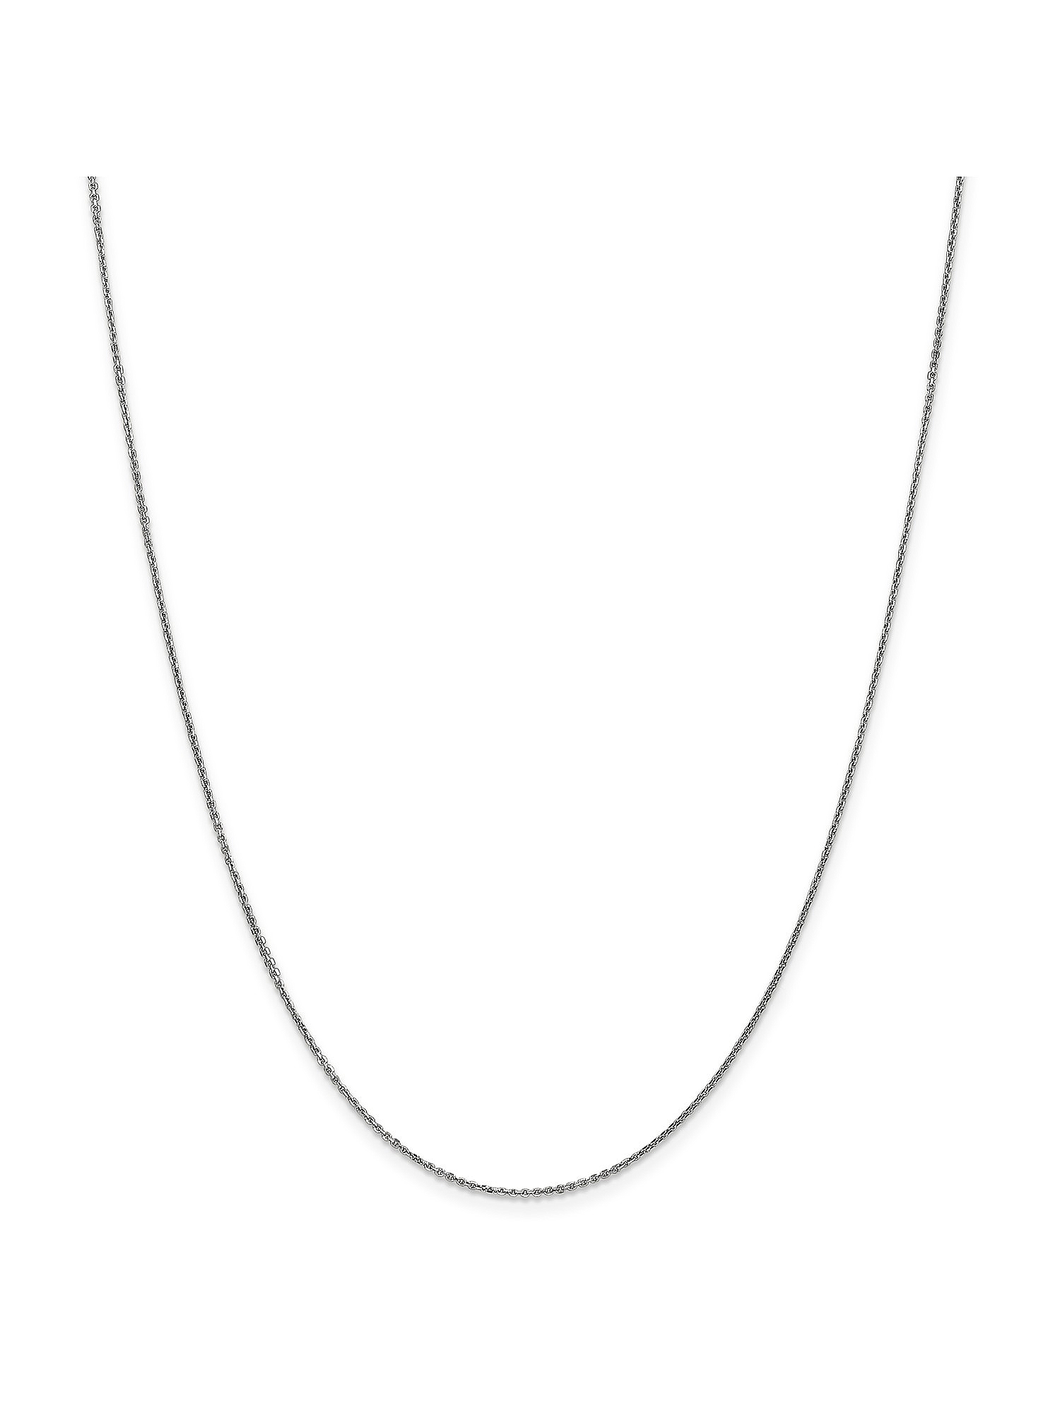 14k White Gold .9mm Cable Chain Necklace